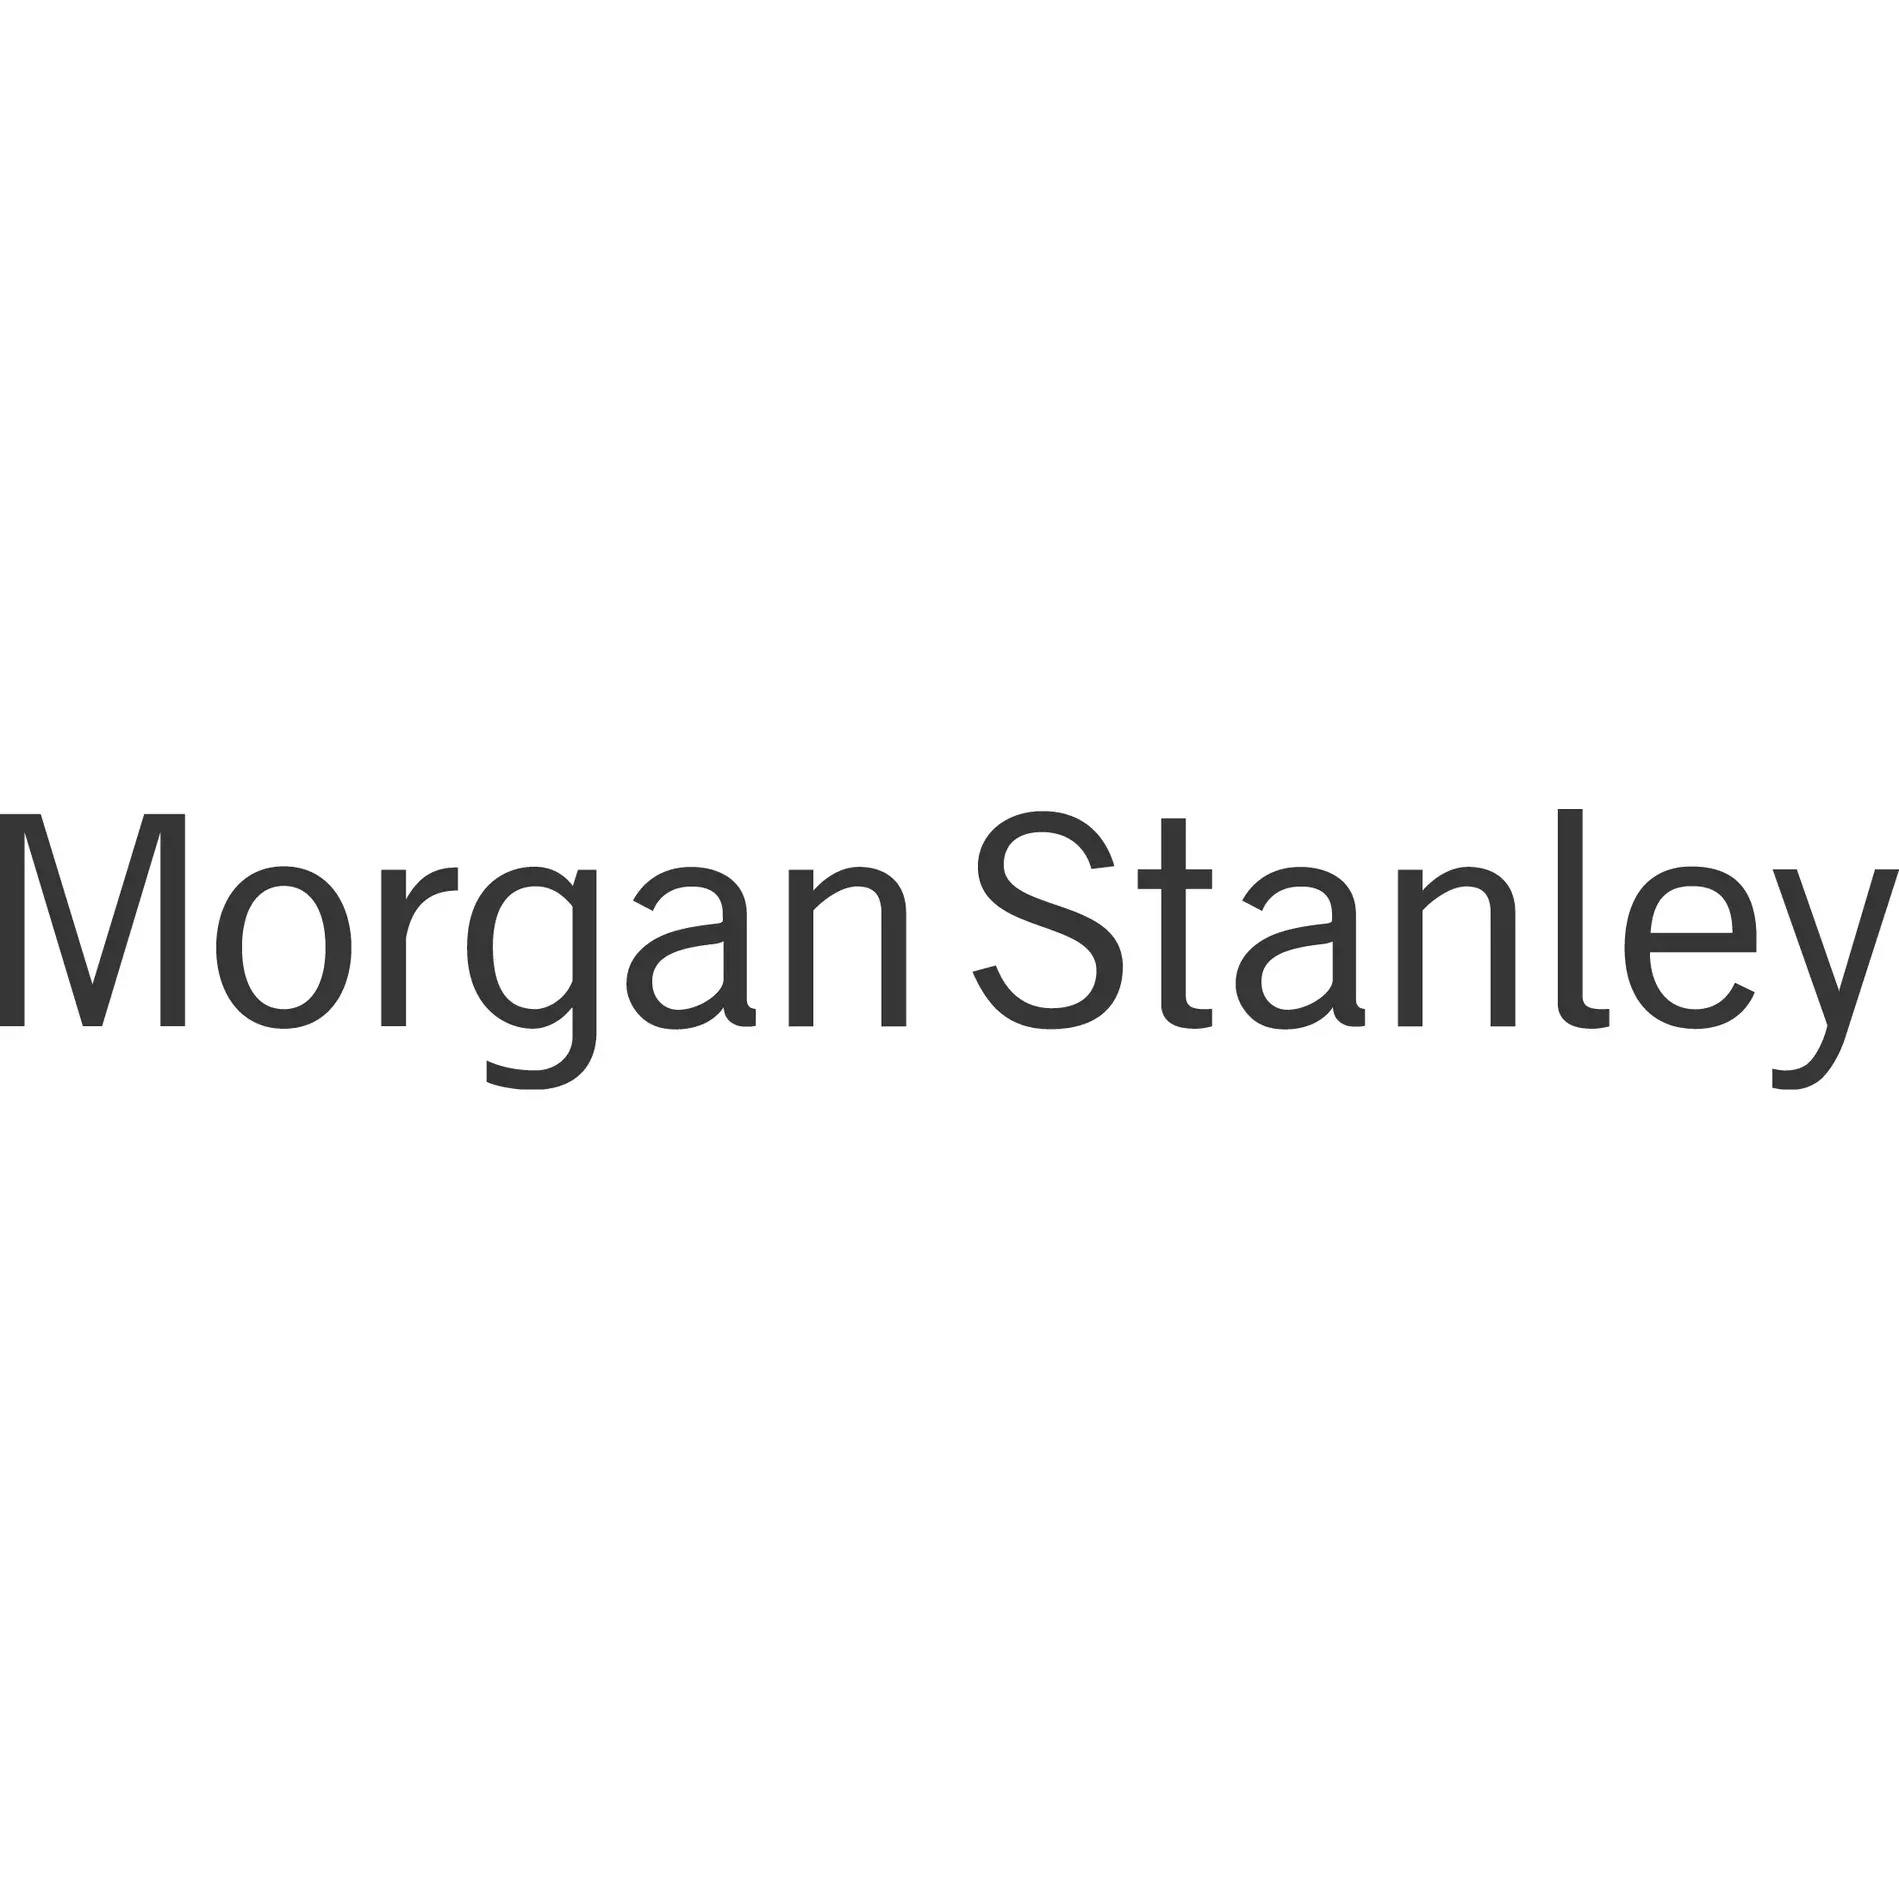 The Minsch Group - Morgan Stanley